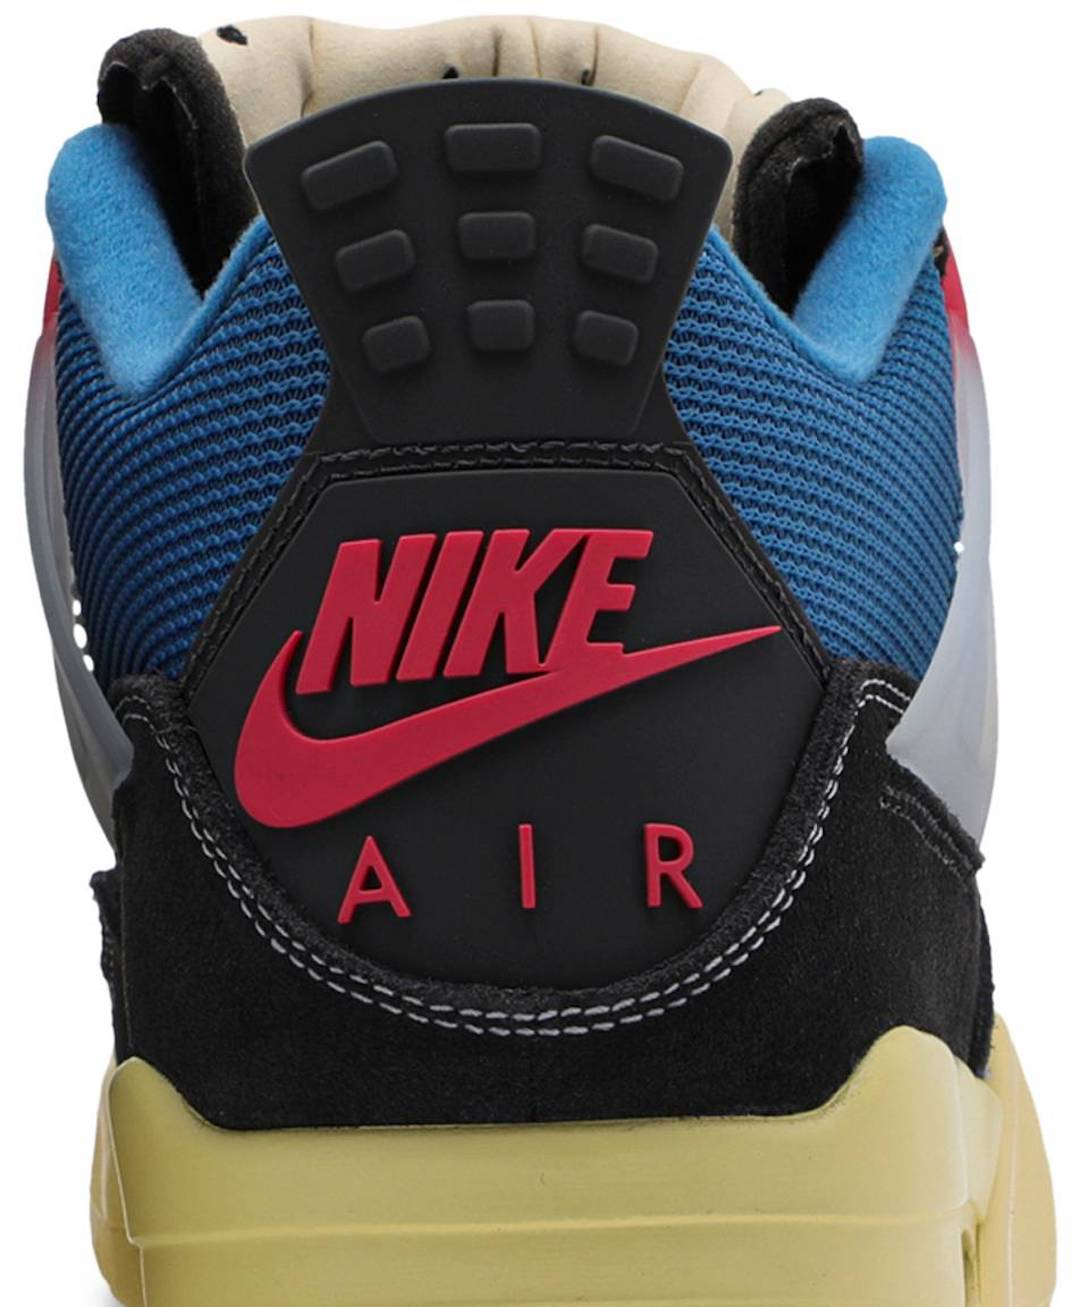 Union Air Jordan 4 Off Noir Brigade Blue Dark Smoke Grey Light Fusion Red DC9533-001 Release Date